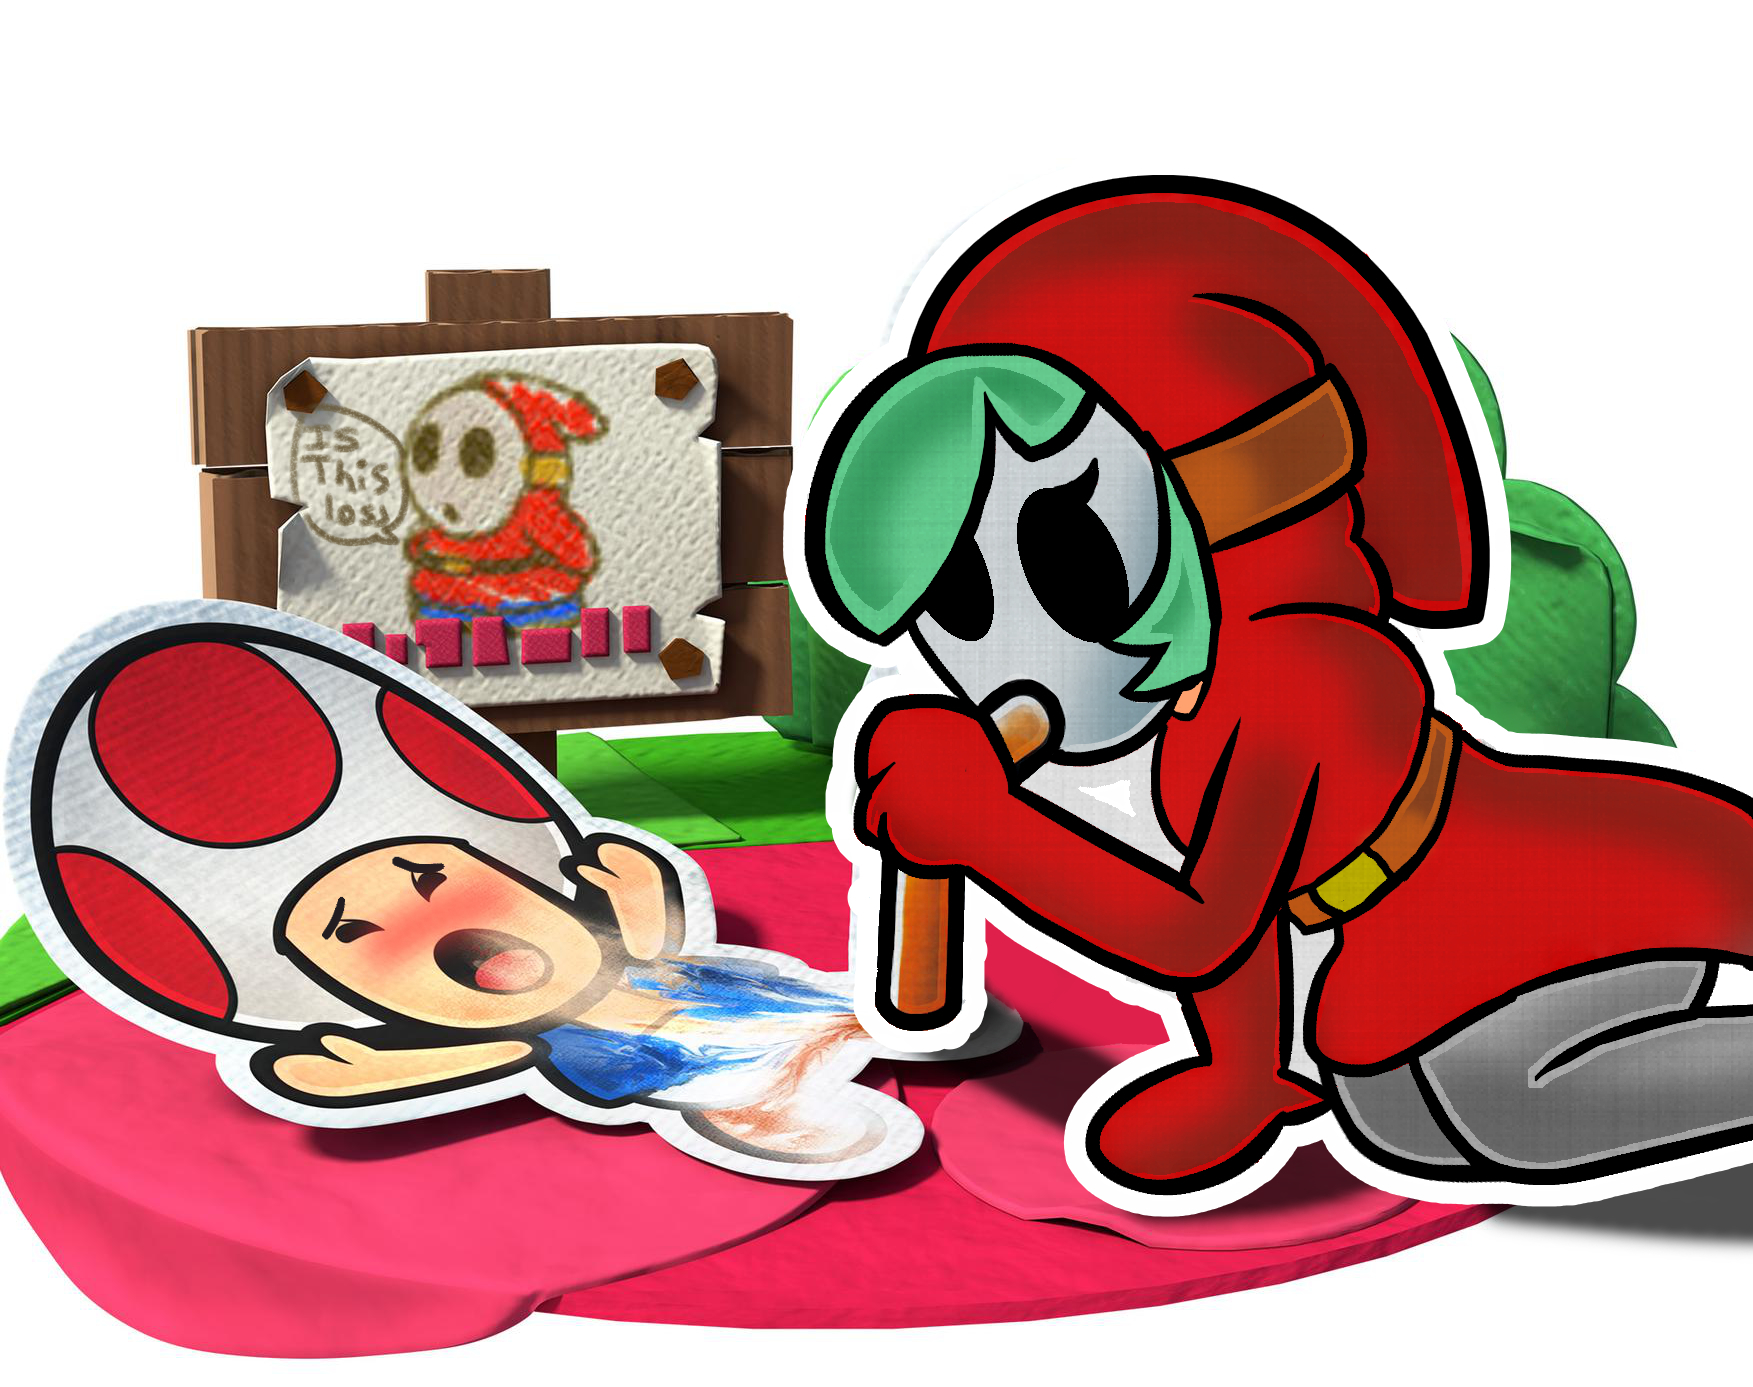 Promo Art But With A Shygal Instead Paper Mario Know Your Meme